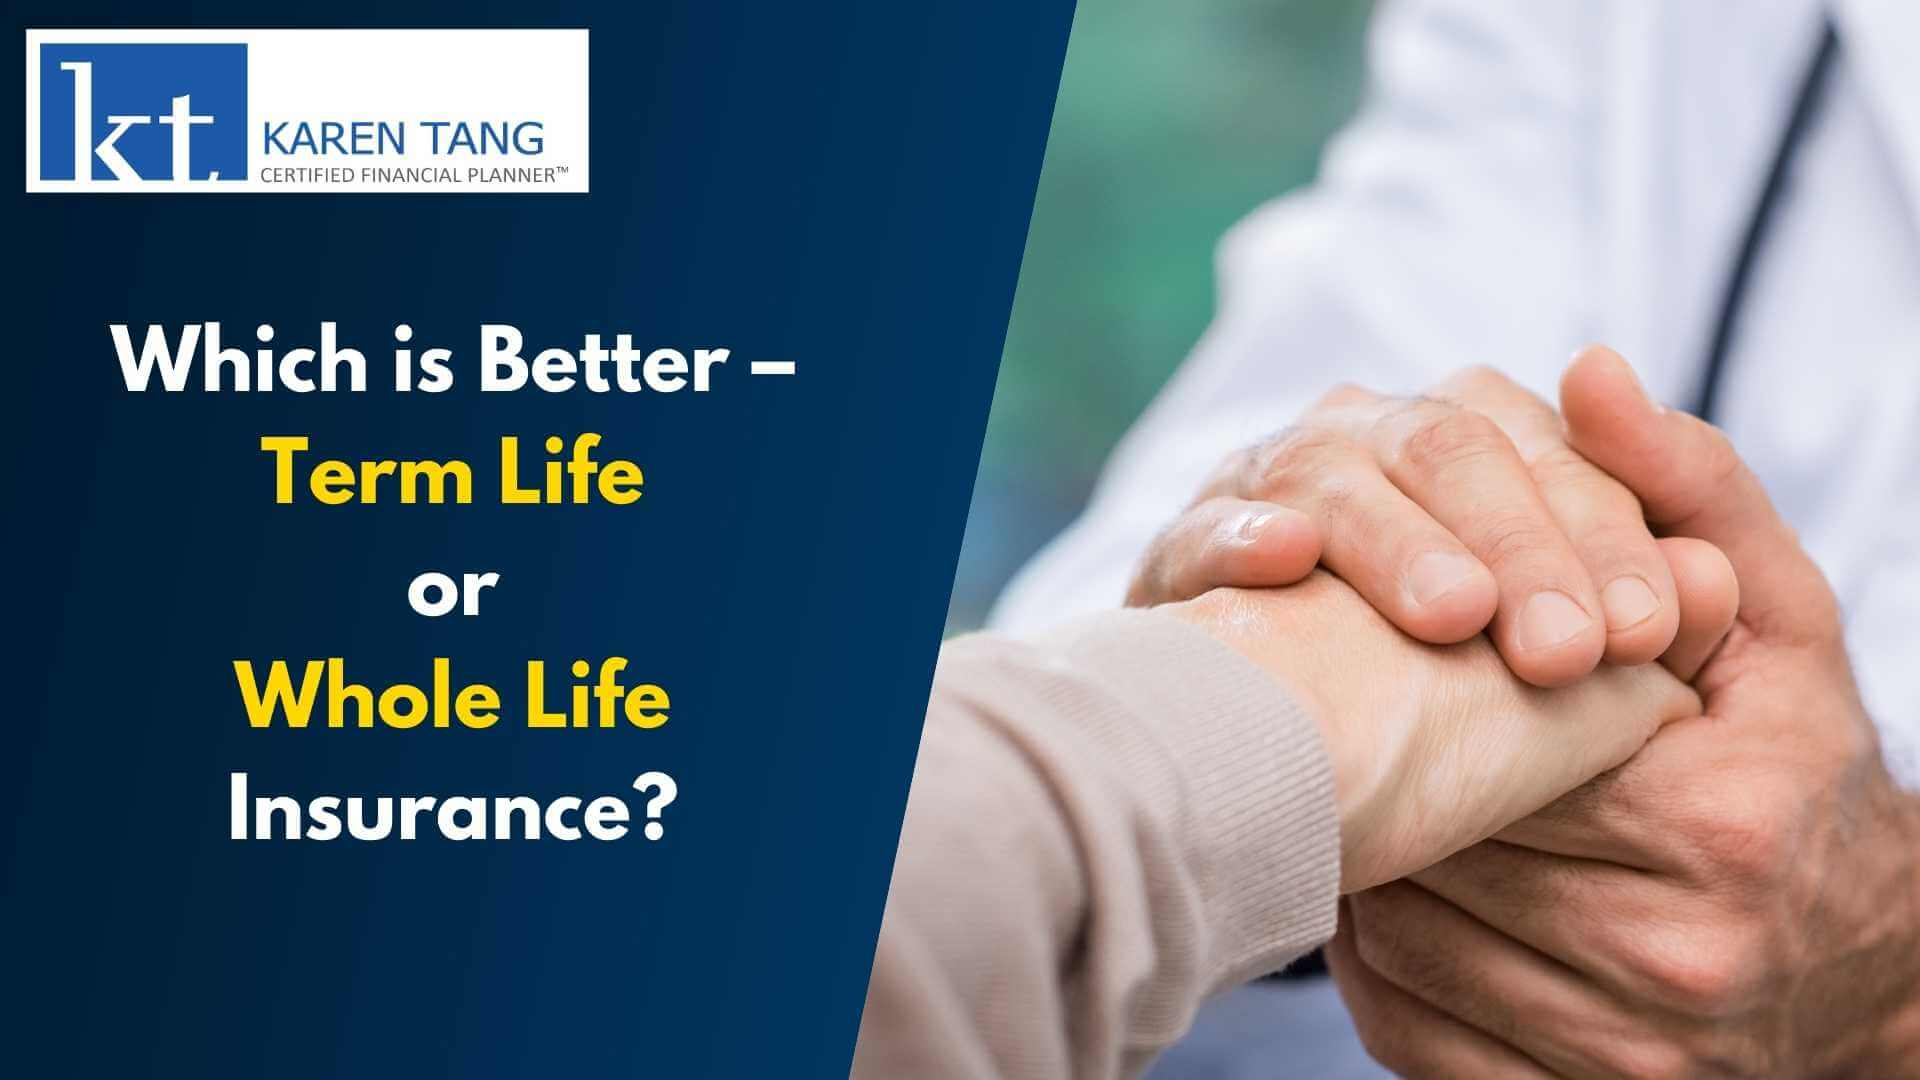 Which is Better - Term Life or Whole Life Insurance in Singapore?